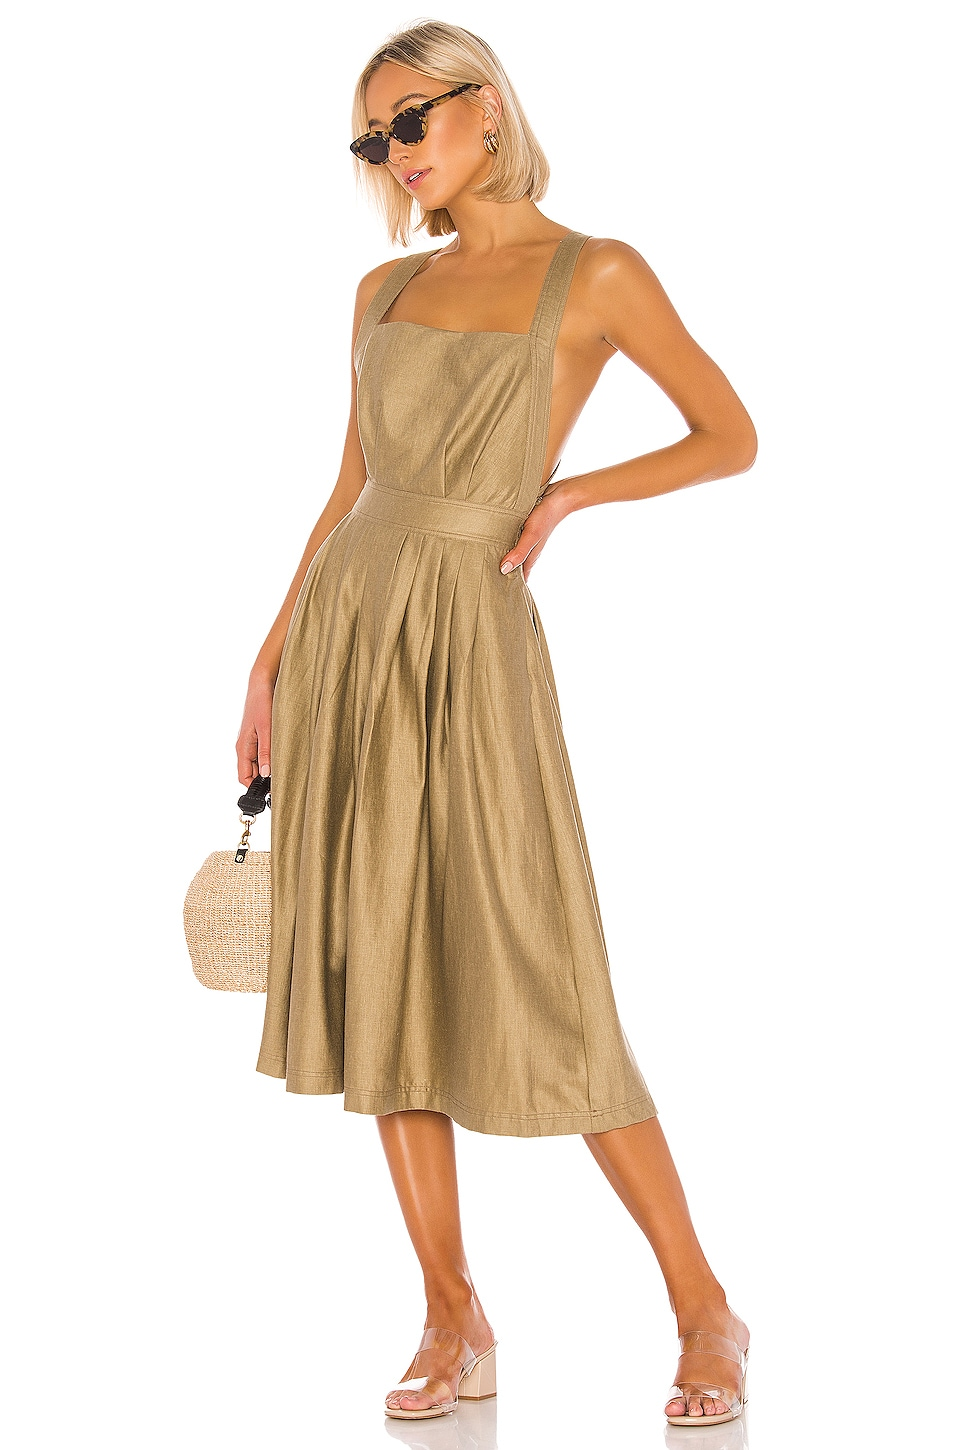 L'Academie The Liane Midi Dress in Olive Green